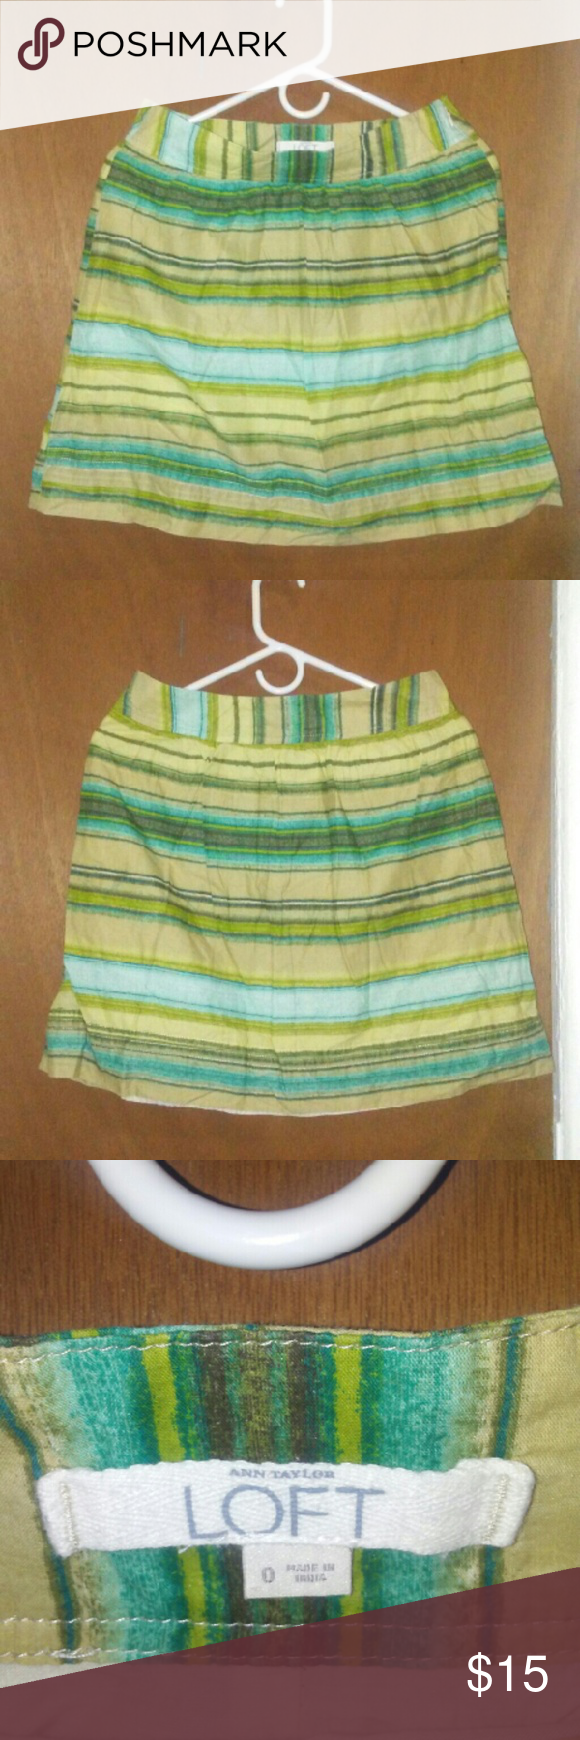 ANN TAYLOR LOFT STRIPED SKIRT ANN TAYLOR LOFT STRIPED SKIRT. GREEN AND BLUE COLORS, BEAUTIFUL. GOOD CONDITION. SIZE 0 Ann Taylor Skirts Circle & Skater